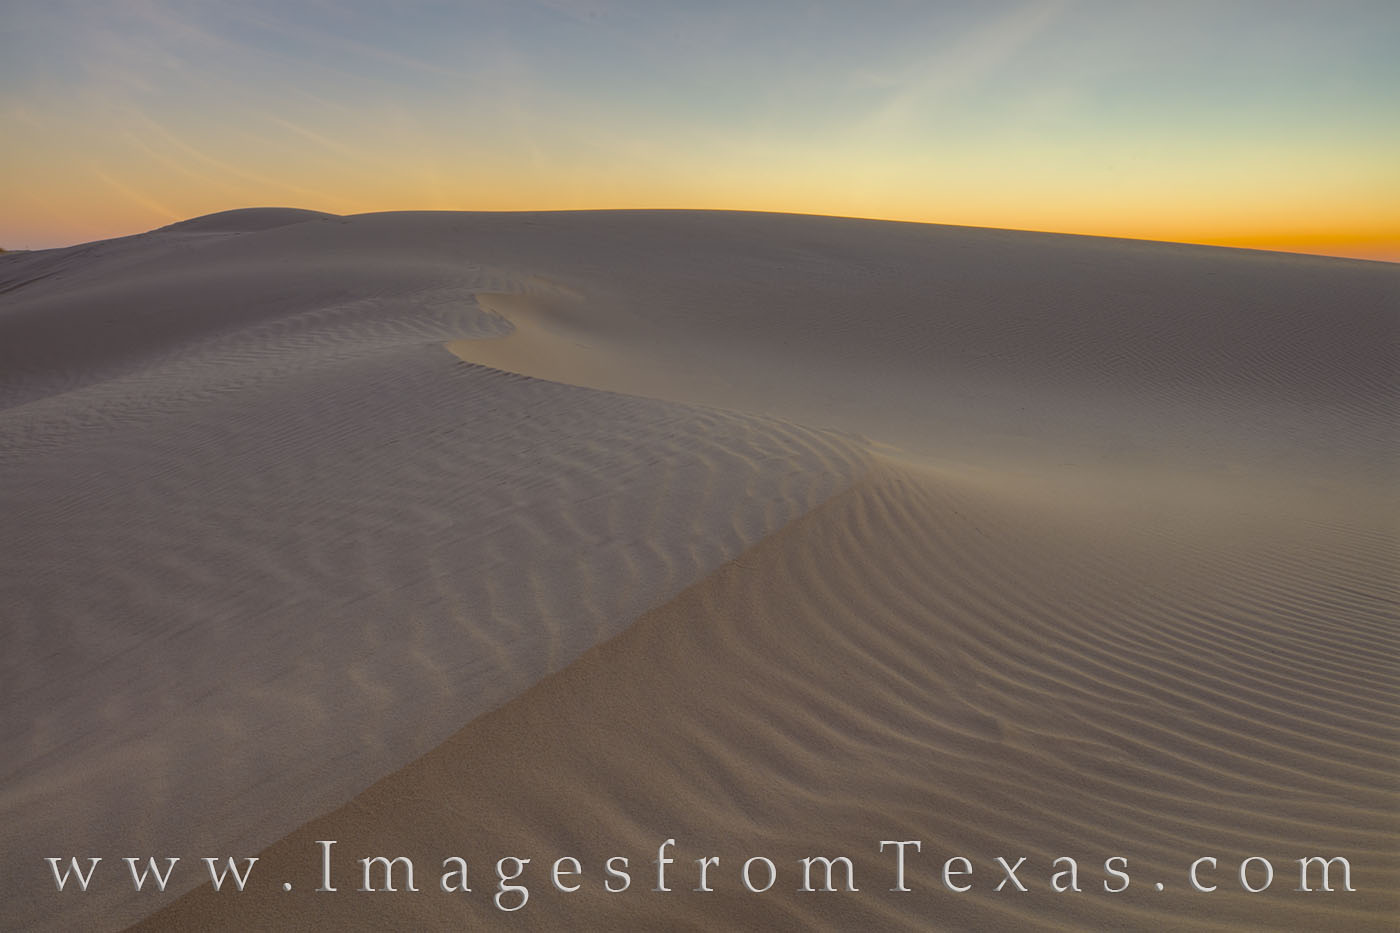 sand, sand dunes, west texas, sandhills, sandhills state park, monahans, west texas, sunrise, texas landscapes, sandscapes, photo